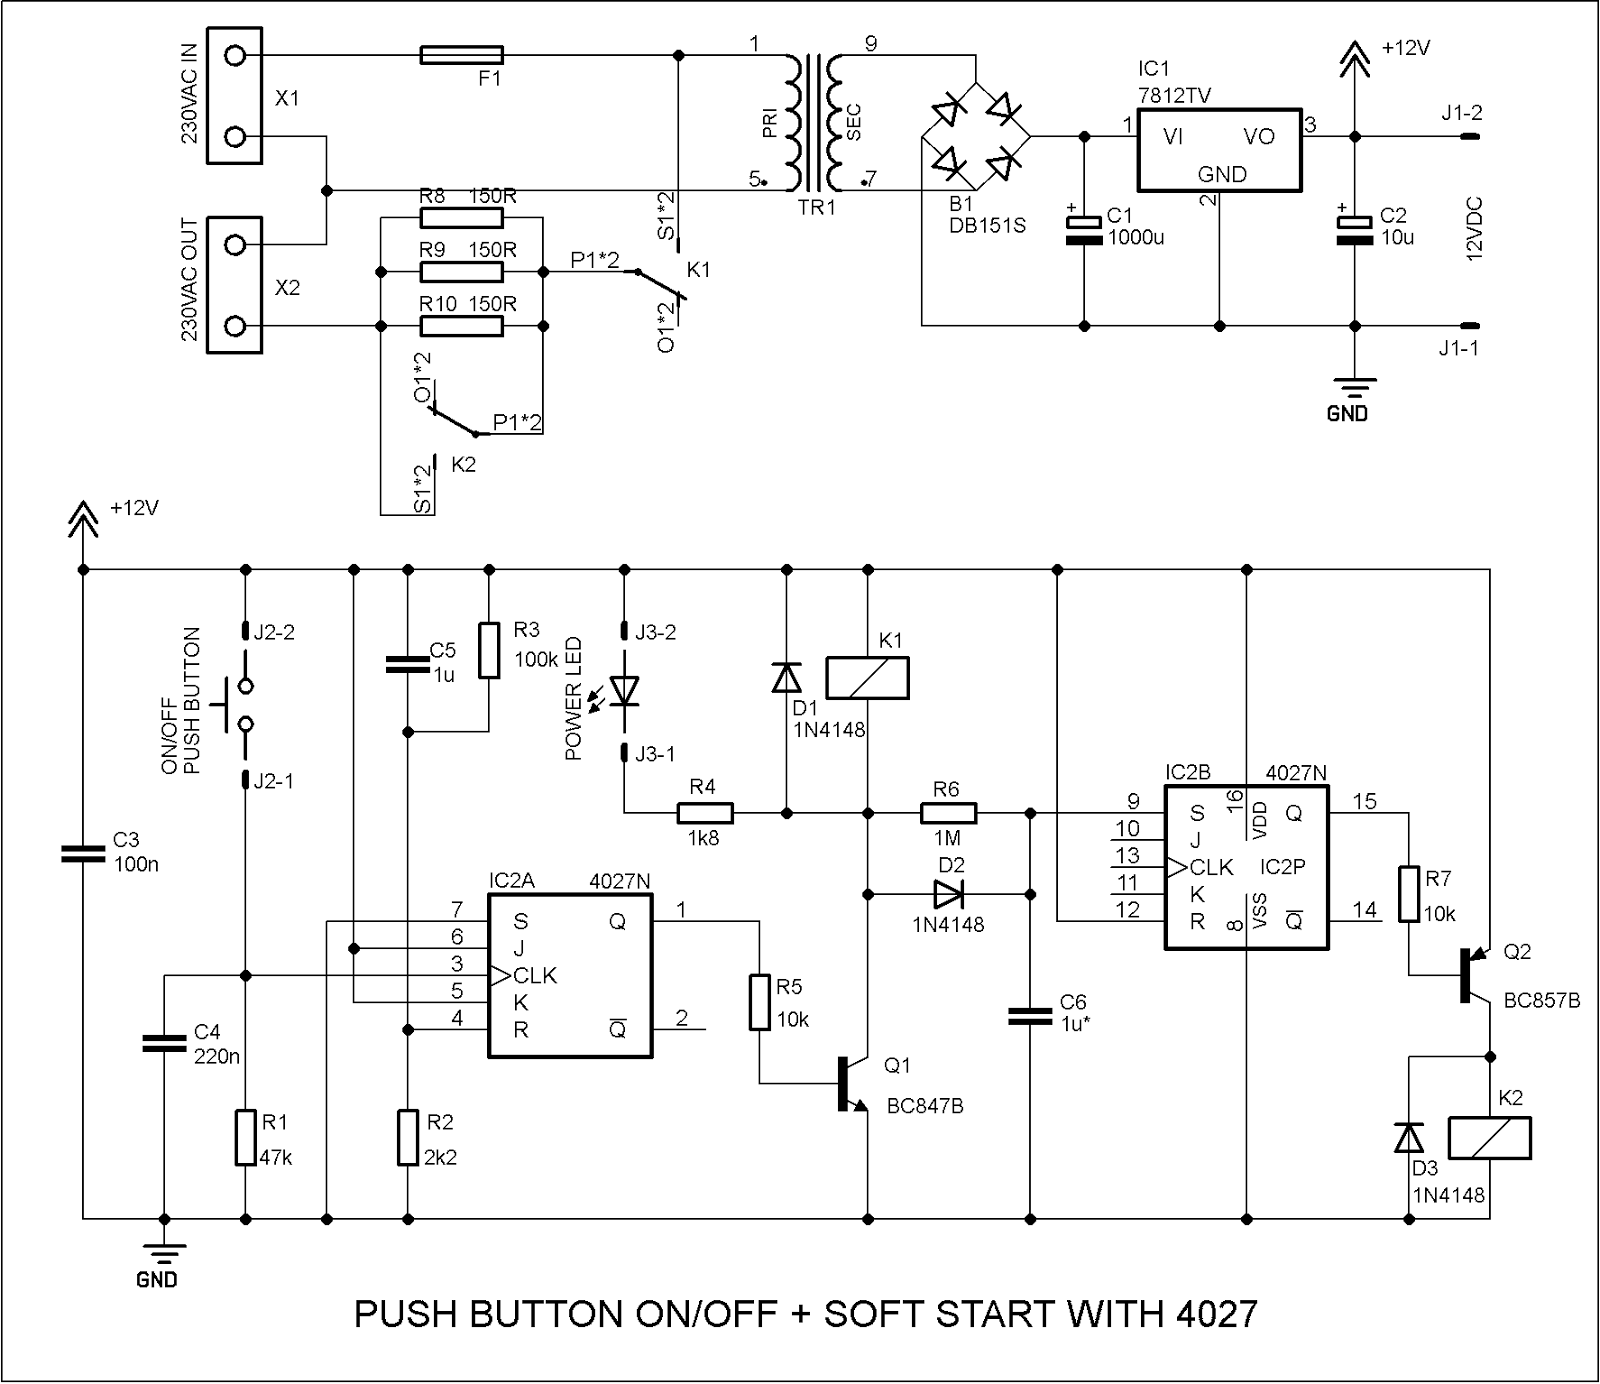 medium resolution of the first timer is wired as push button toggle switch and the second is an ordinary switch connected again with delay circuit